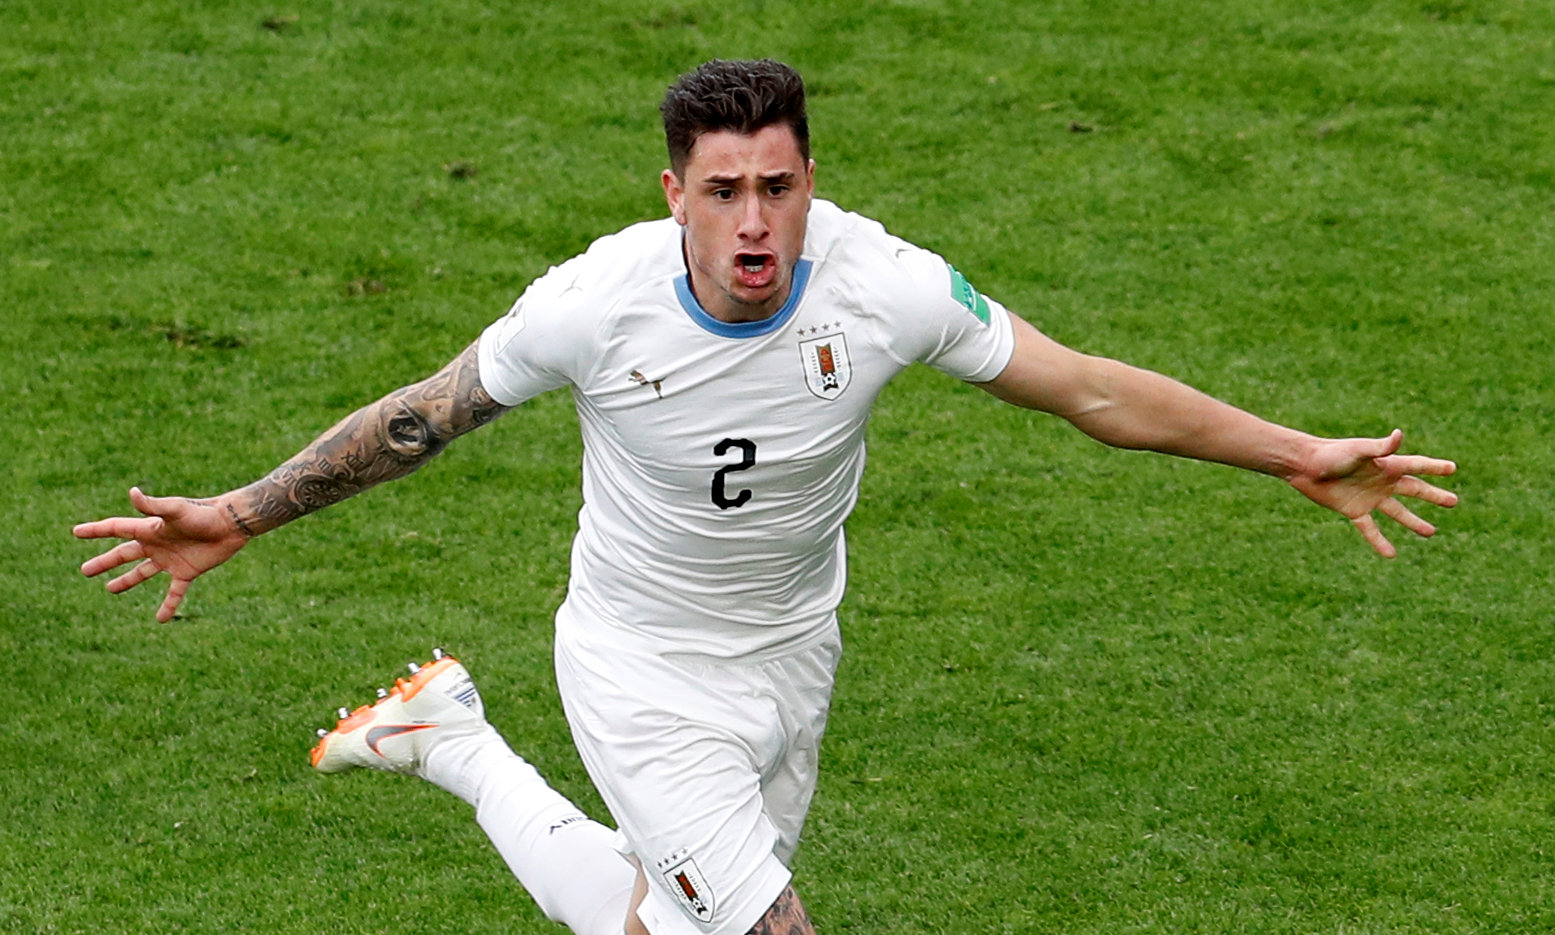 Jose Gimenez best players in the FIFA World Cup so far- Round 1